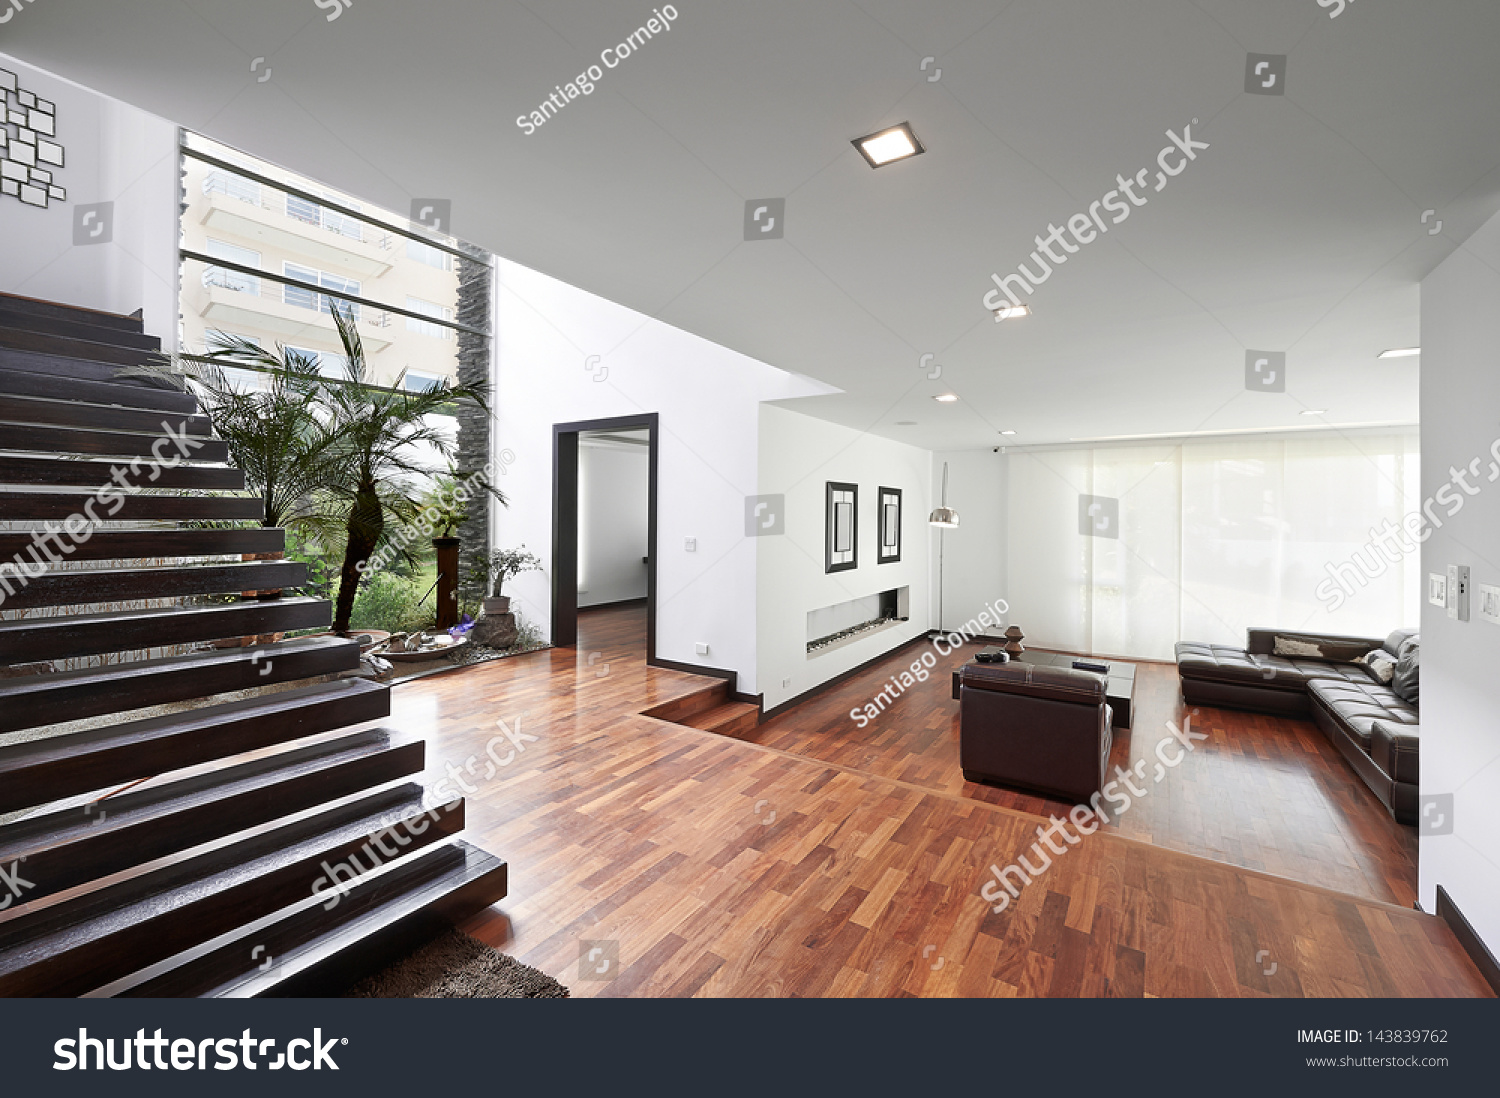 living room with a beautiful interior | EZ Canvas